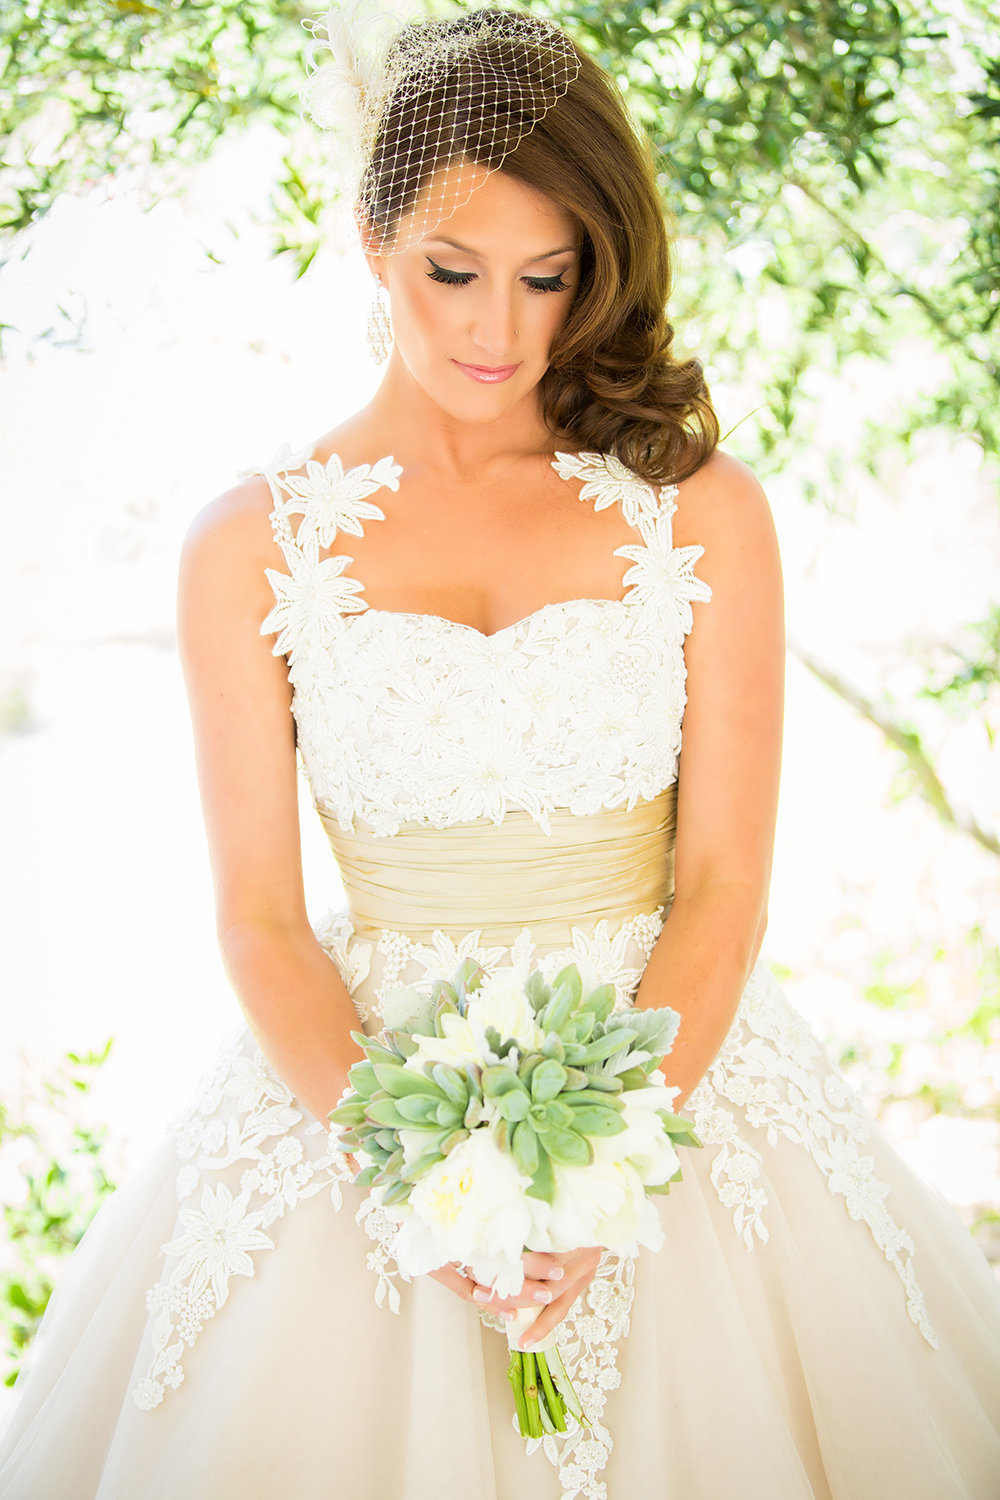 Los Willows wedding photos beautiful bride with flowers